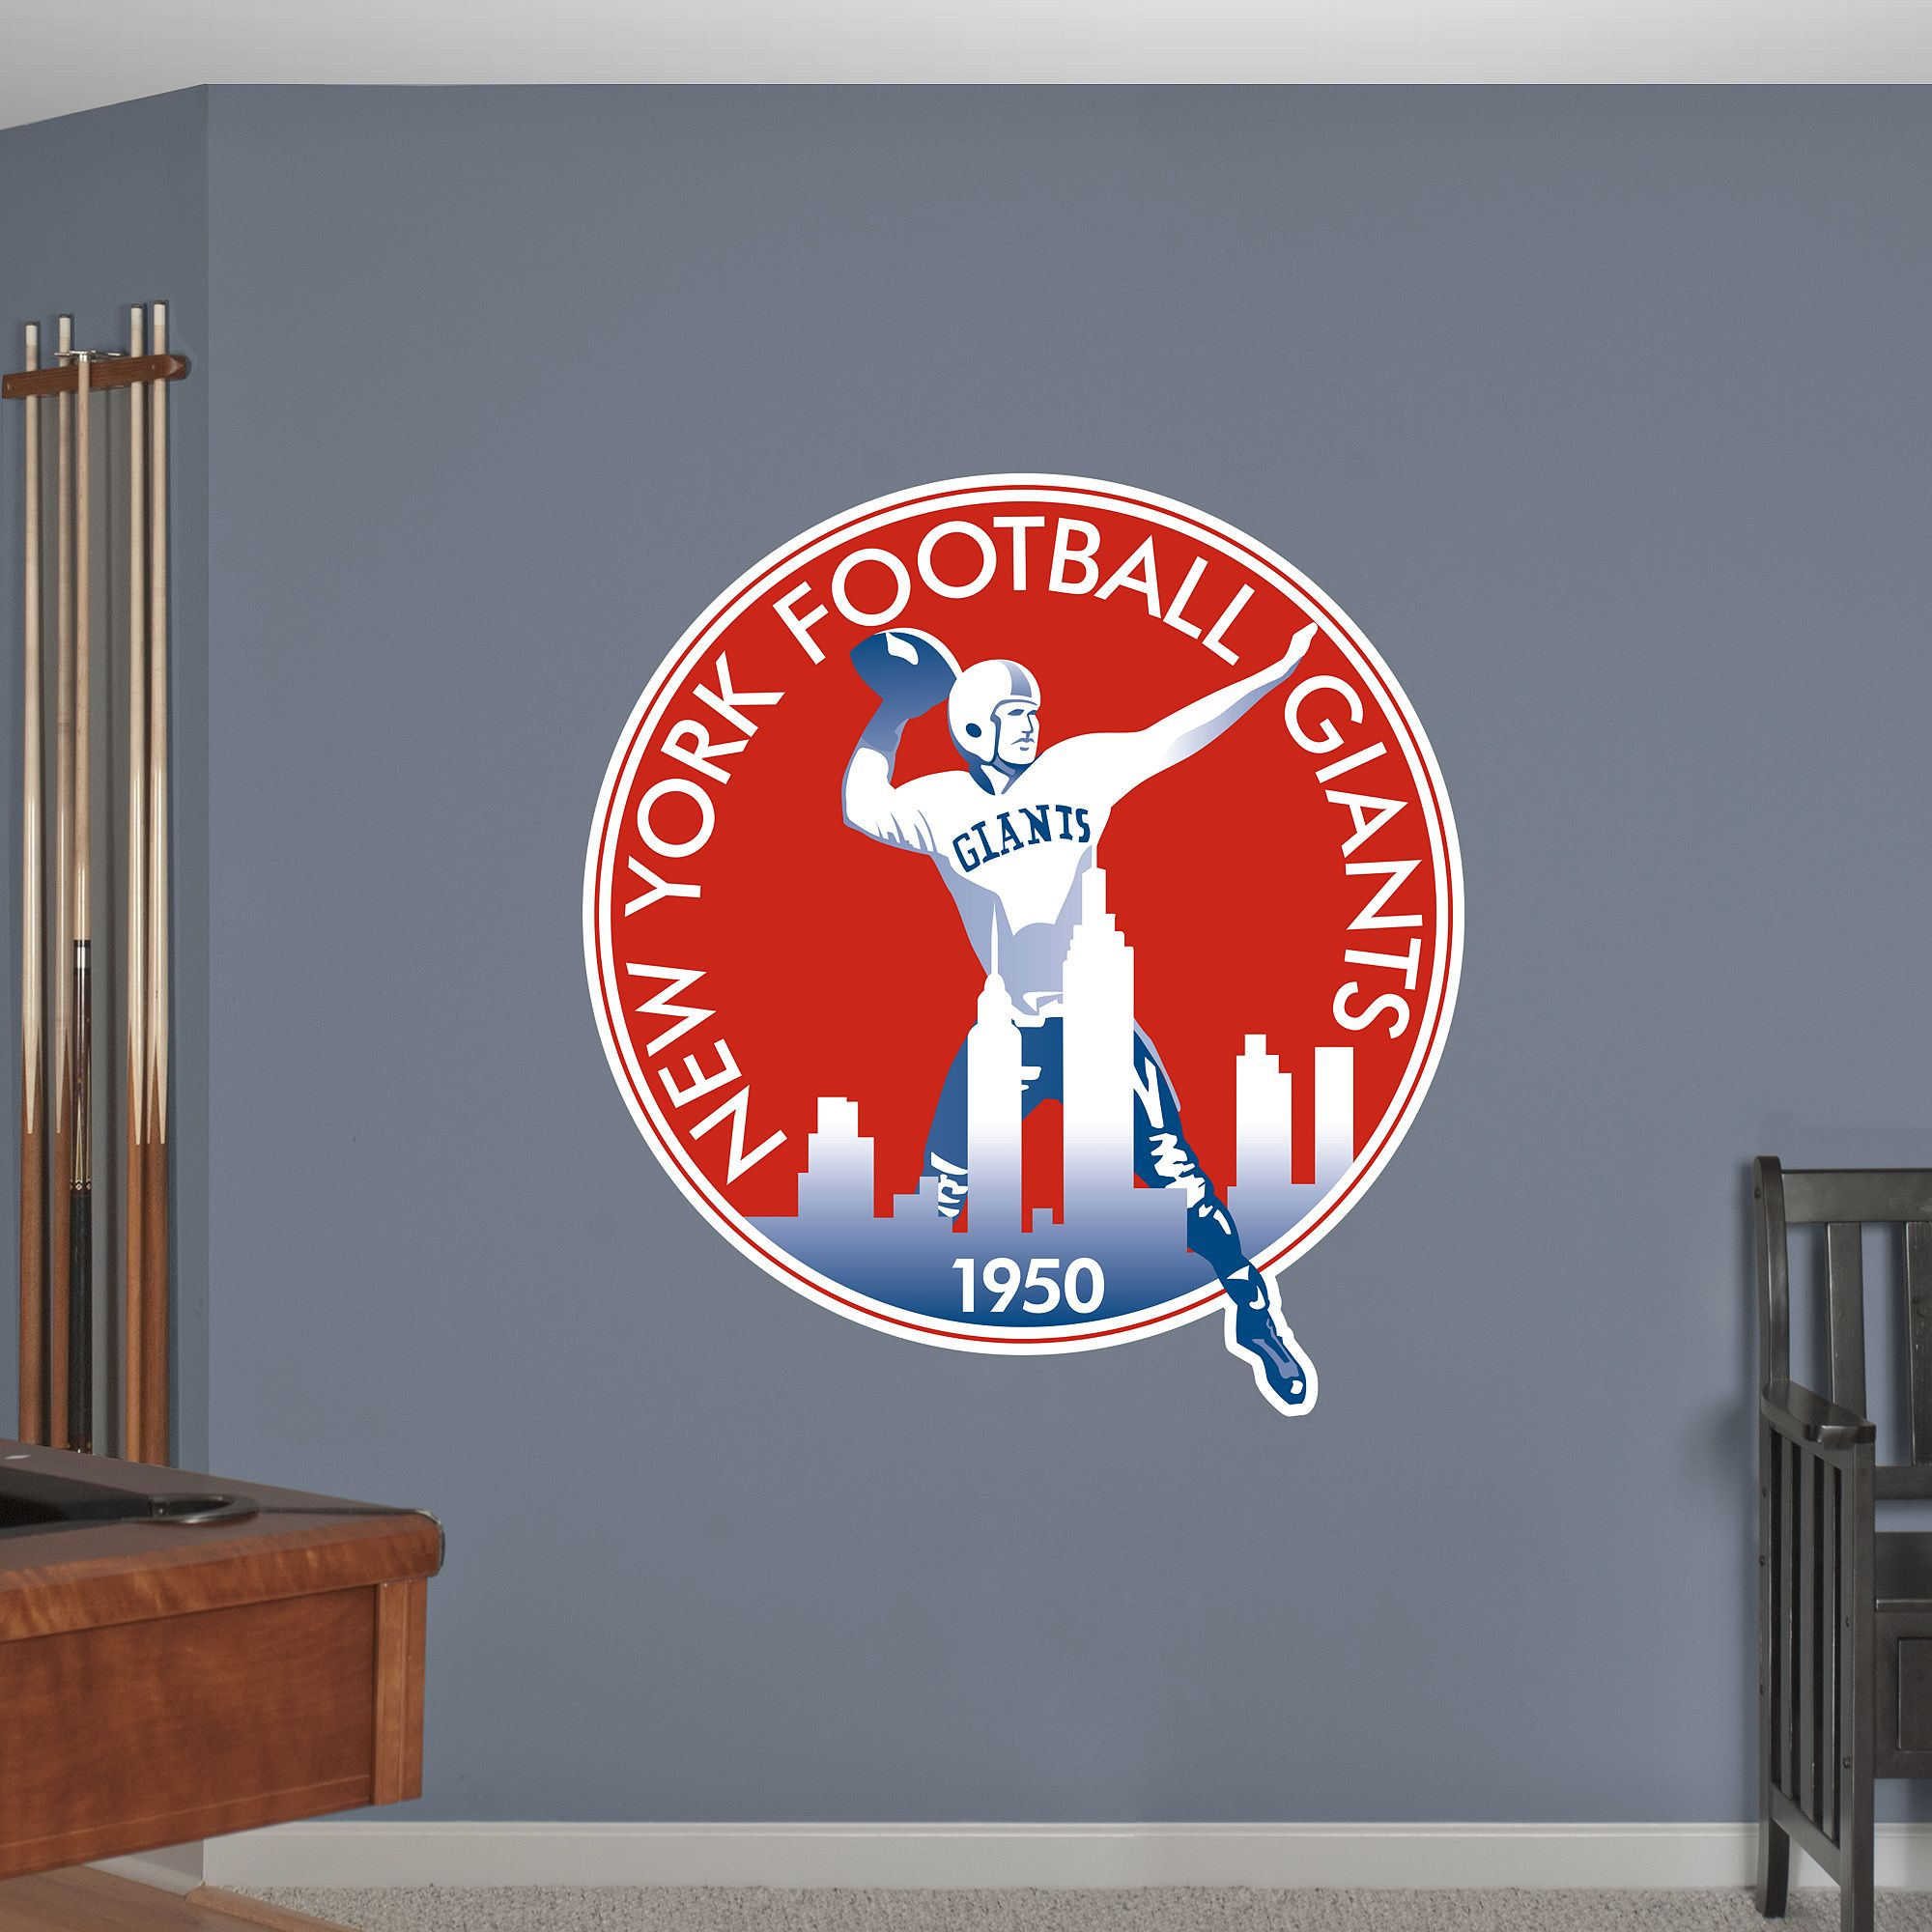 New York Giants Classic Logo New York Giants Nfl Wall Decals San Francisco 49ers Logo Fathead